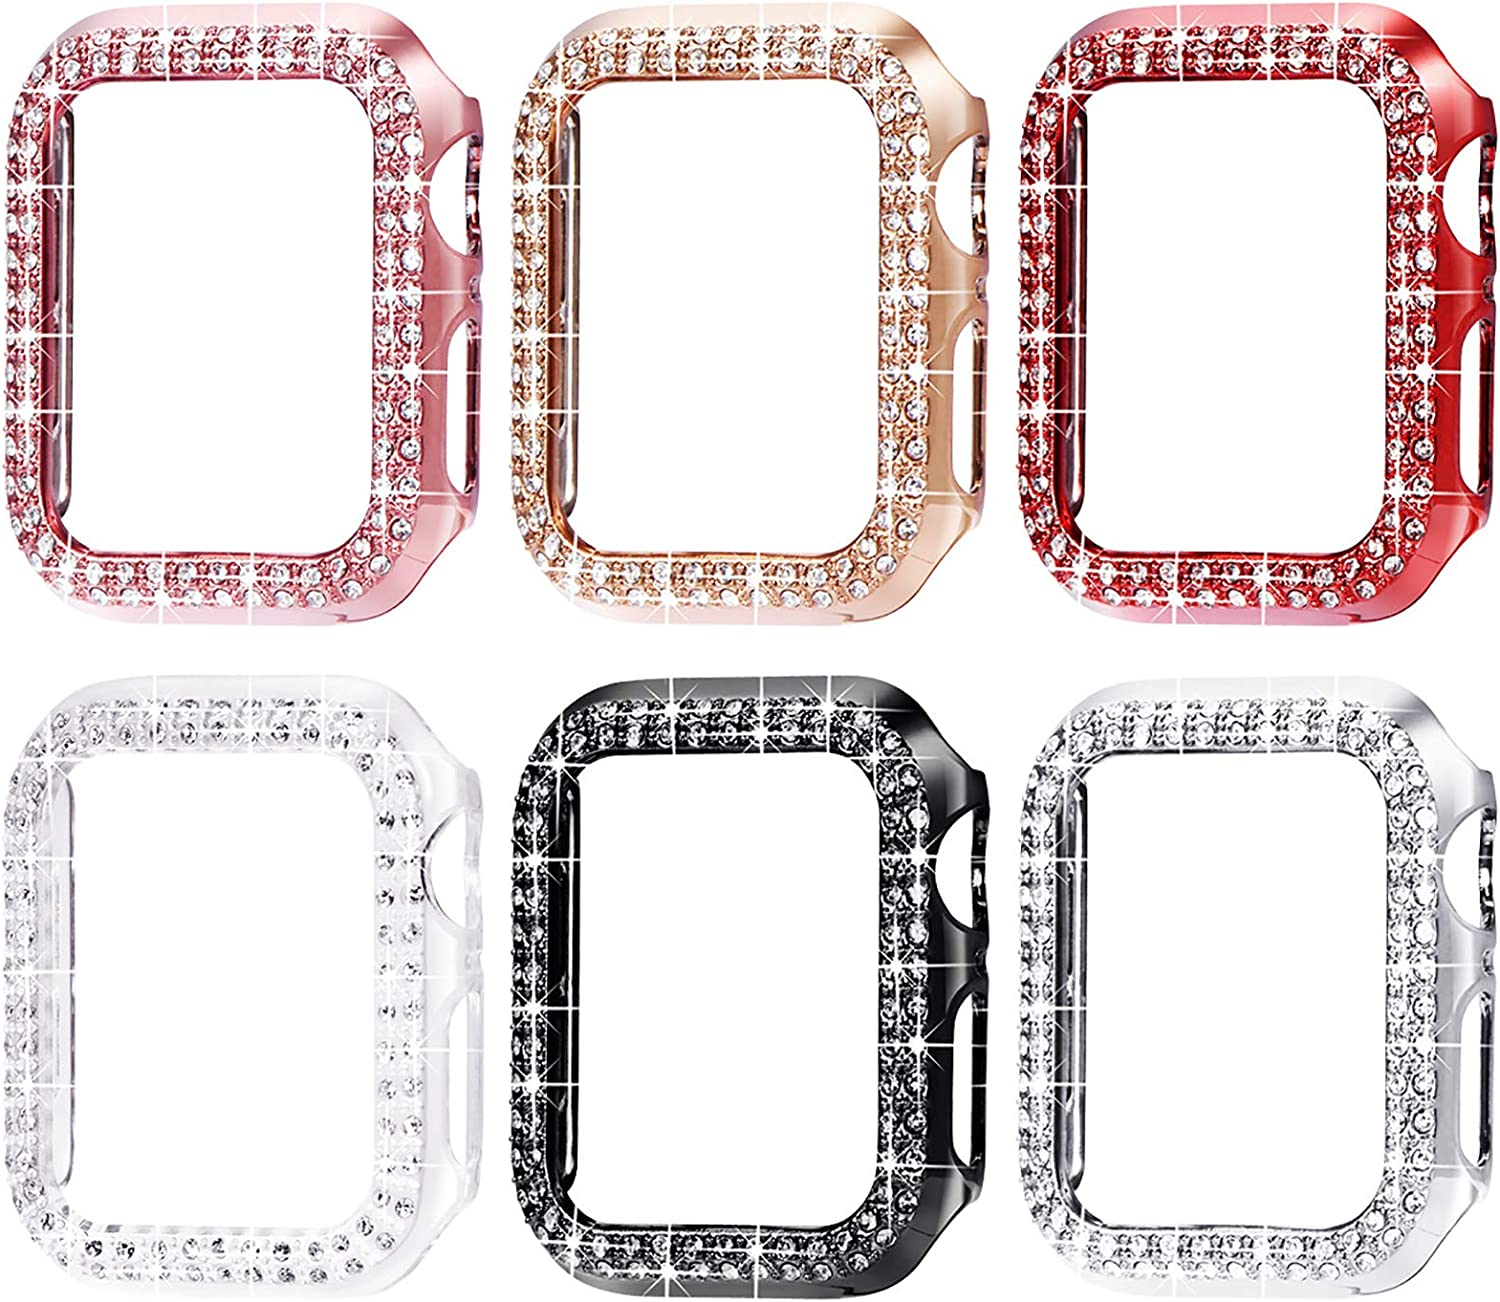 Surace 42mm Case Compatible with Apple Watch Case, Bling Frame Protective Case Compatible for iWatch Series 5 Series 4 (6 Packs, Rose Gold/Pink Gold/Red/Black/Silver/Clear-42mm